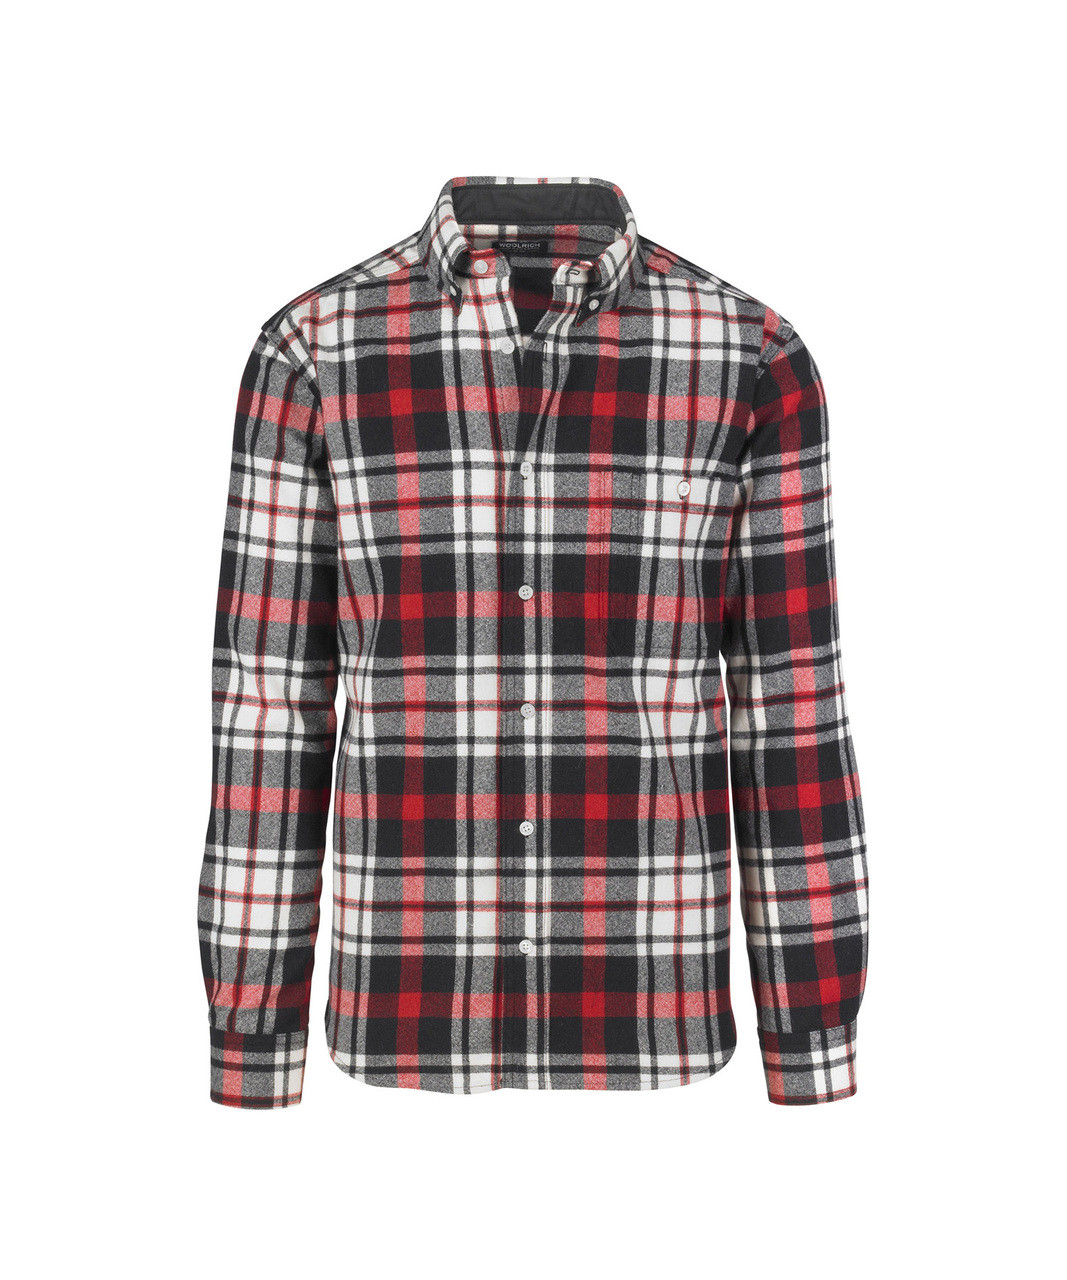 men\u0027s limited edition made in usa wool flannel shirt john rich